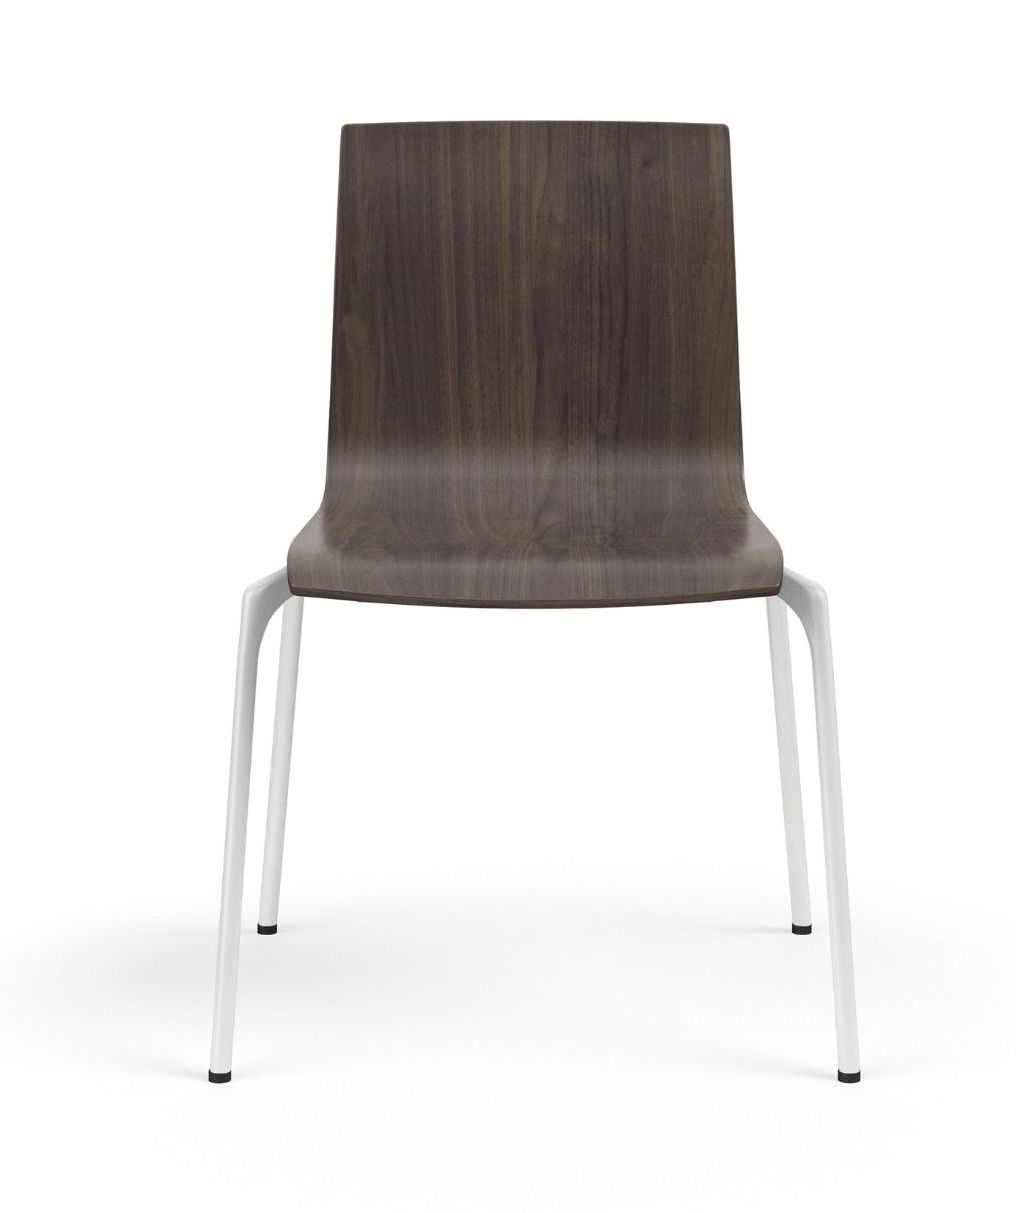 voz guest chair - front view